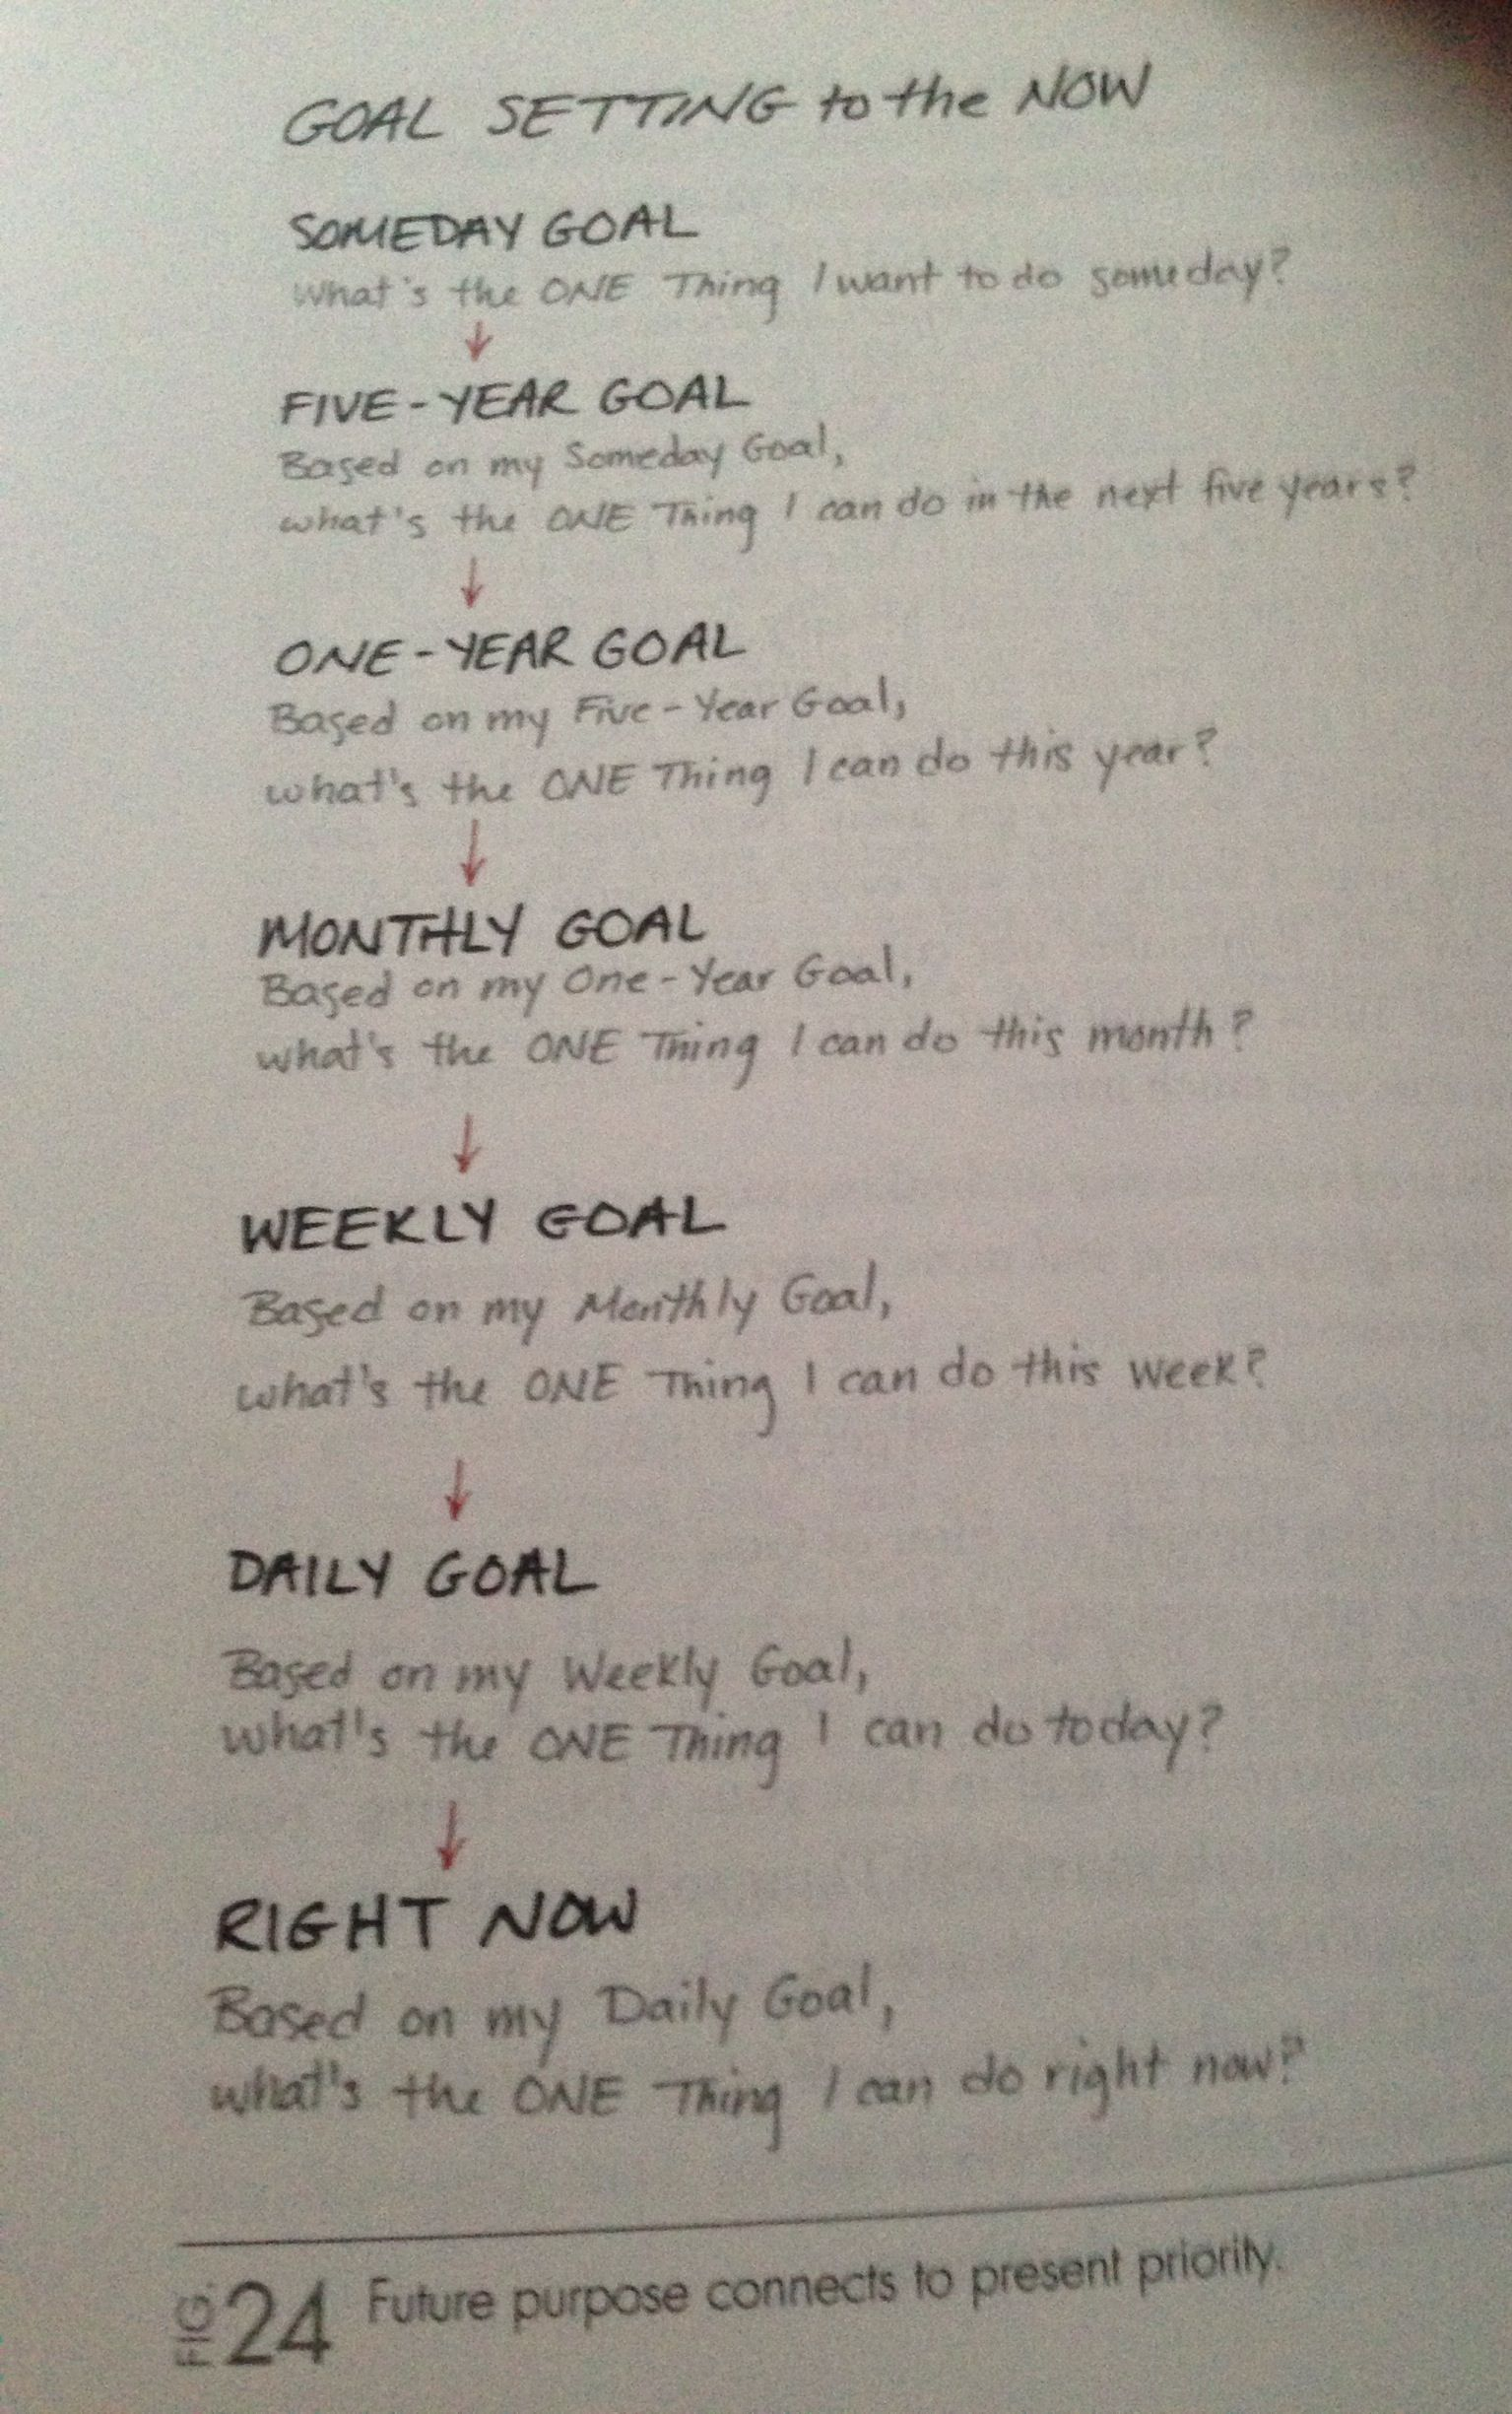 Goal Setting To The Now Future Purpose Connects To Present Priority From The Book The One